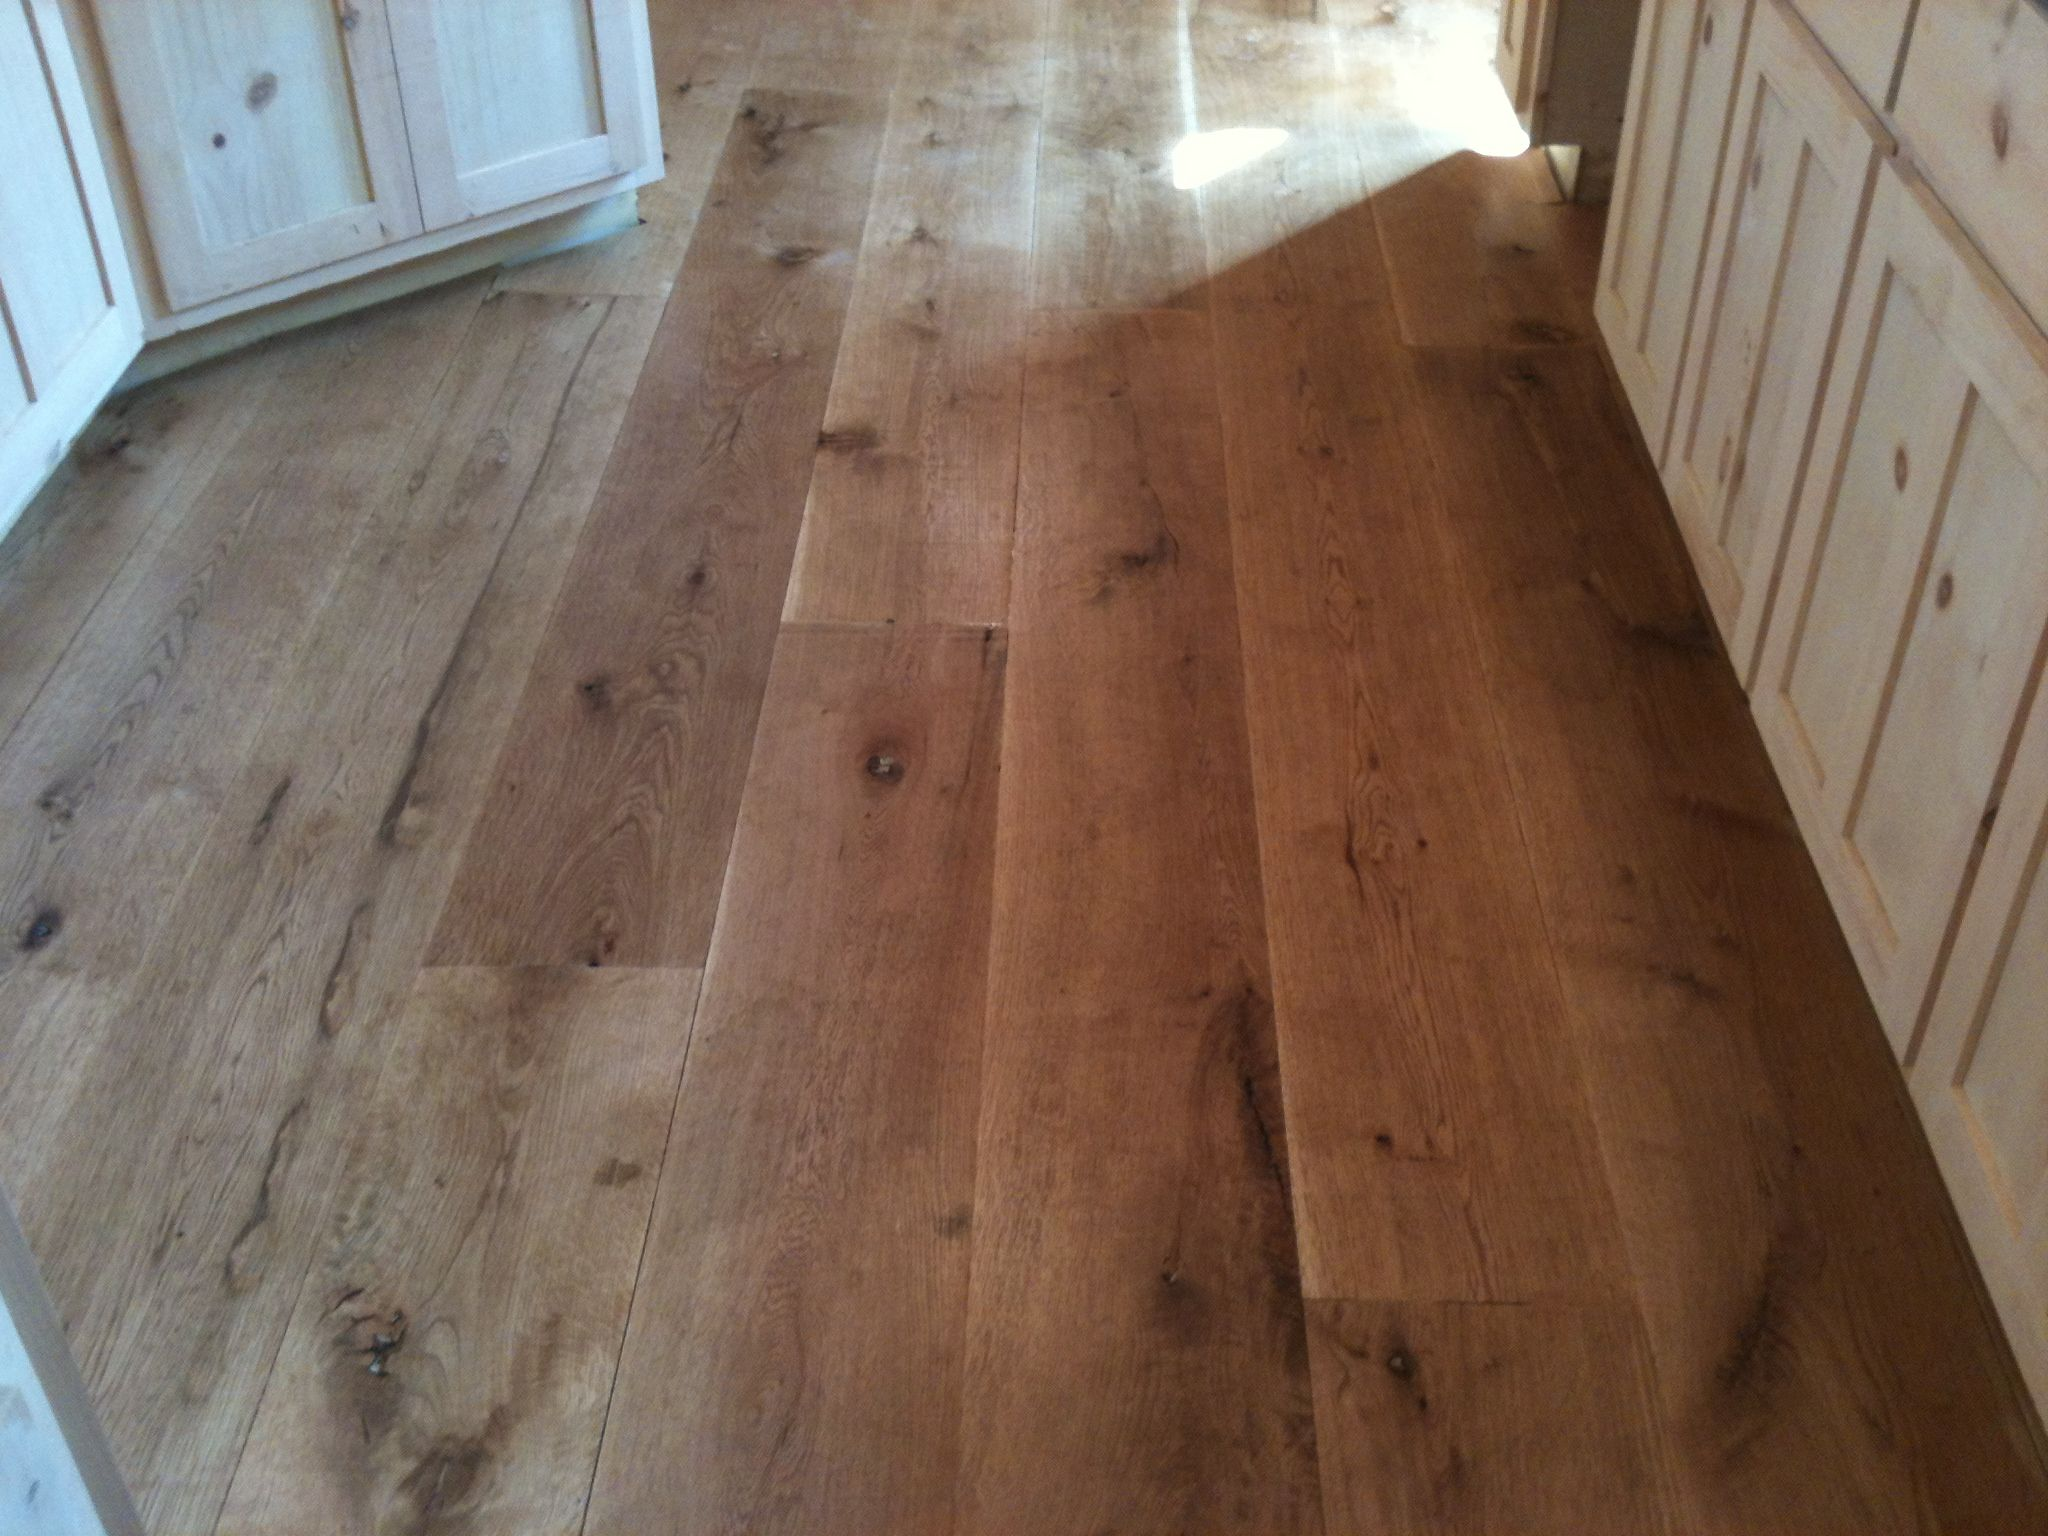 Rustic Kitchen Floors 10 Wide Plank Flooring Character White Oak Hardwood Flooring